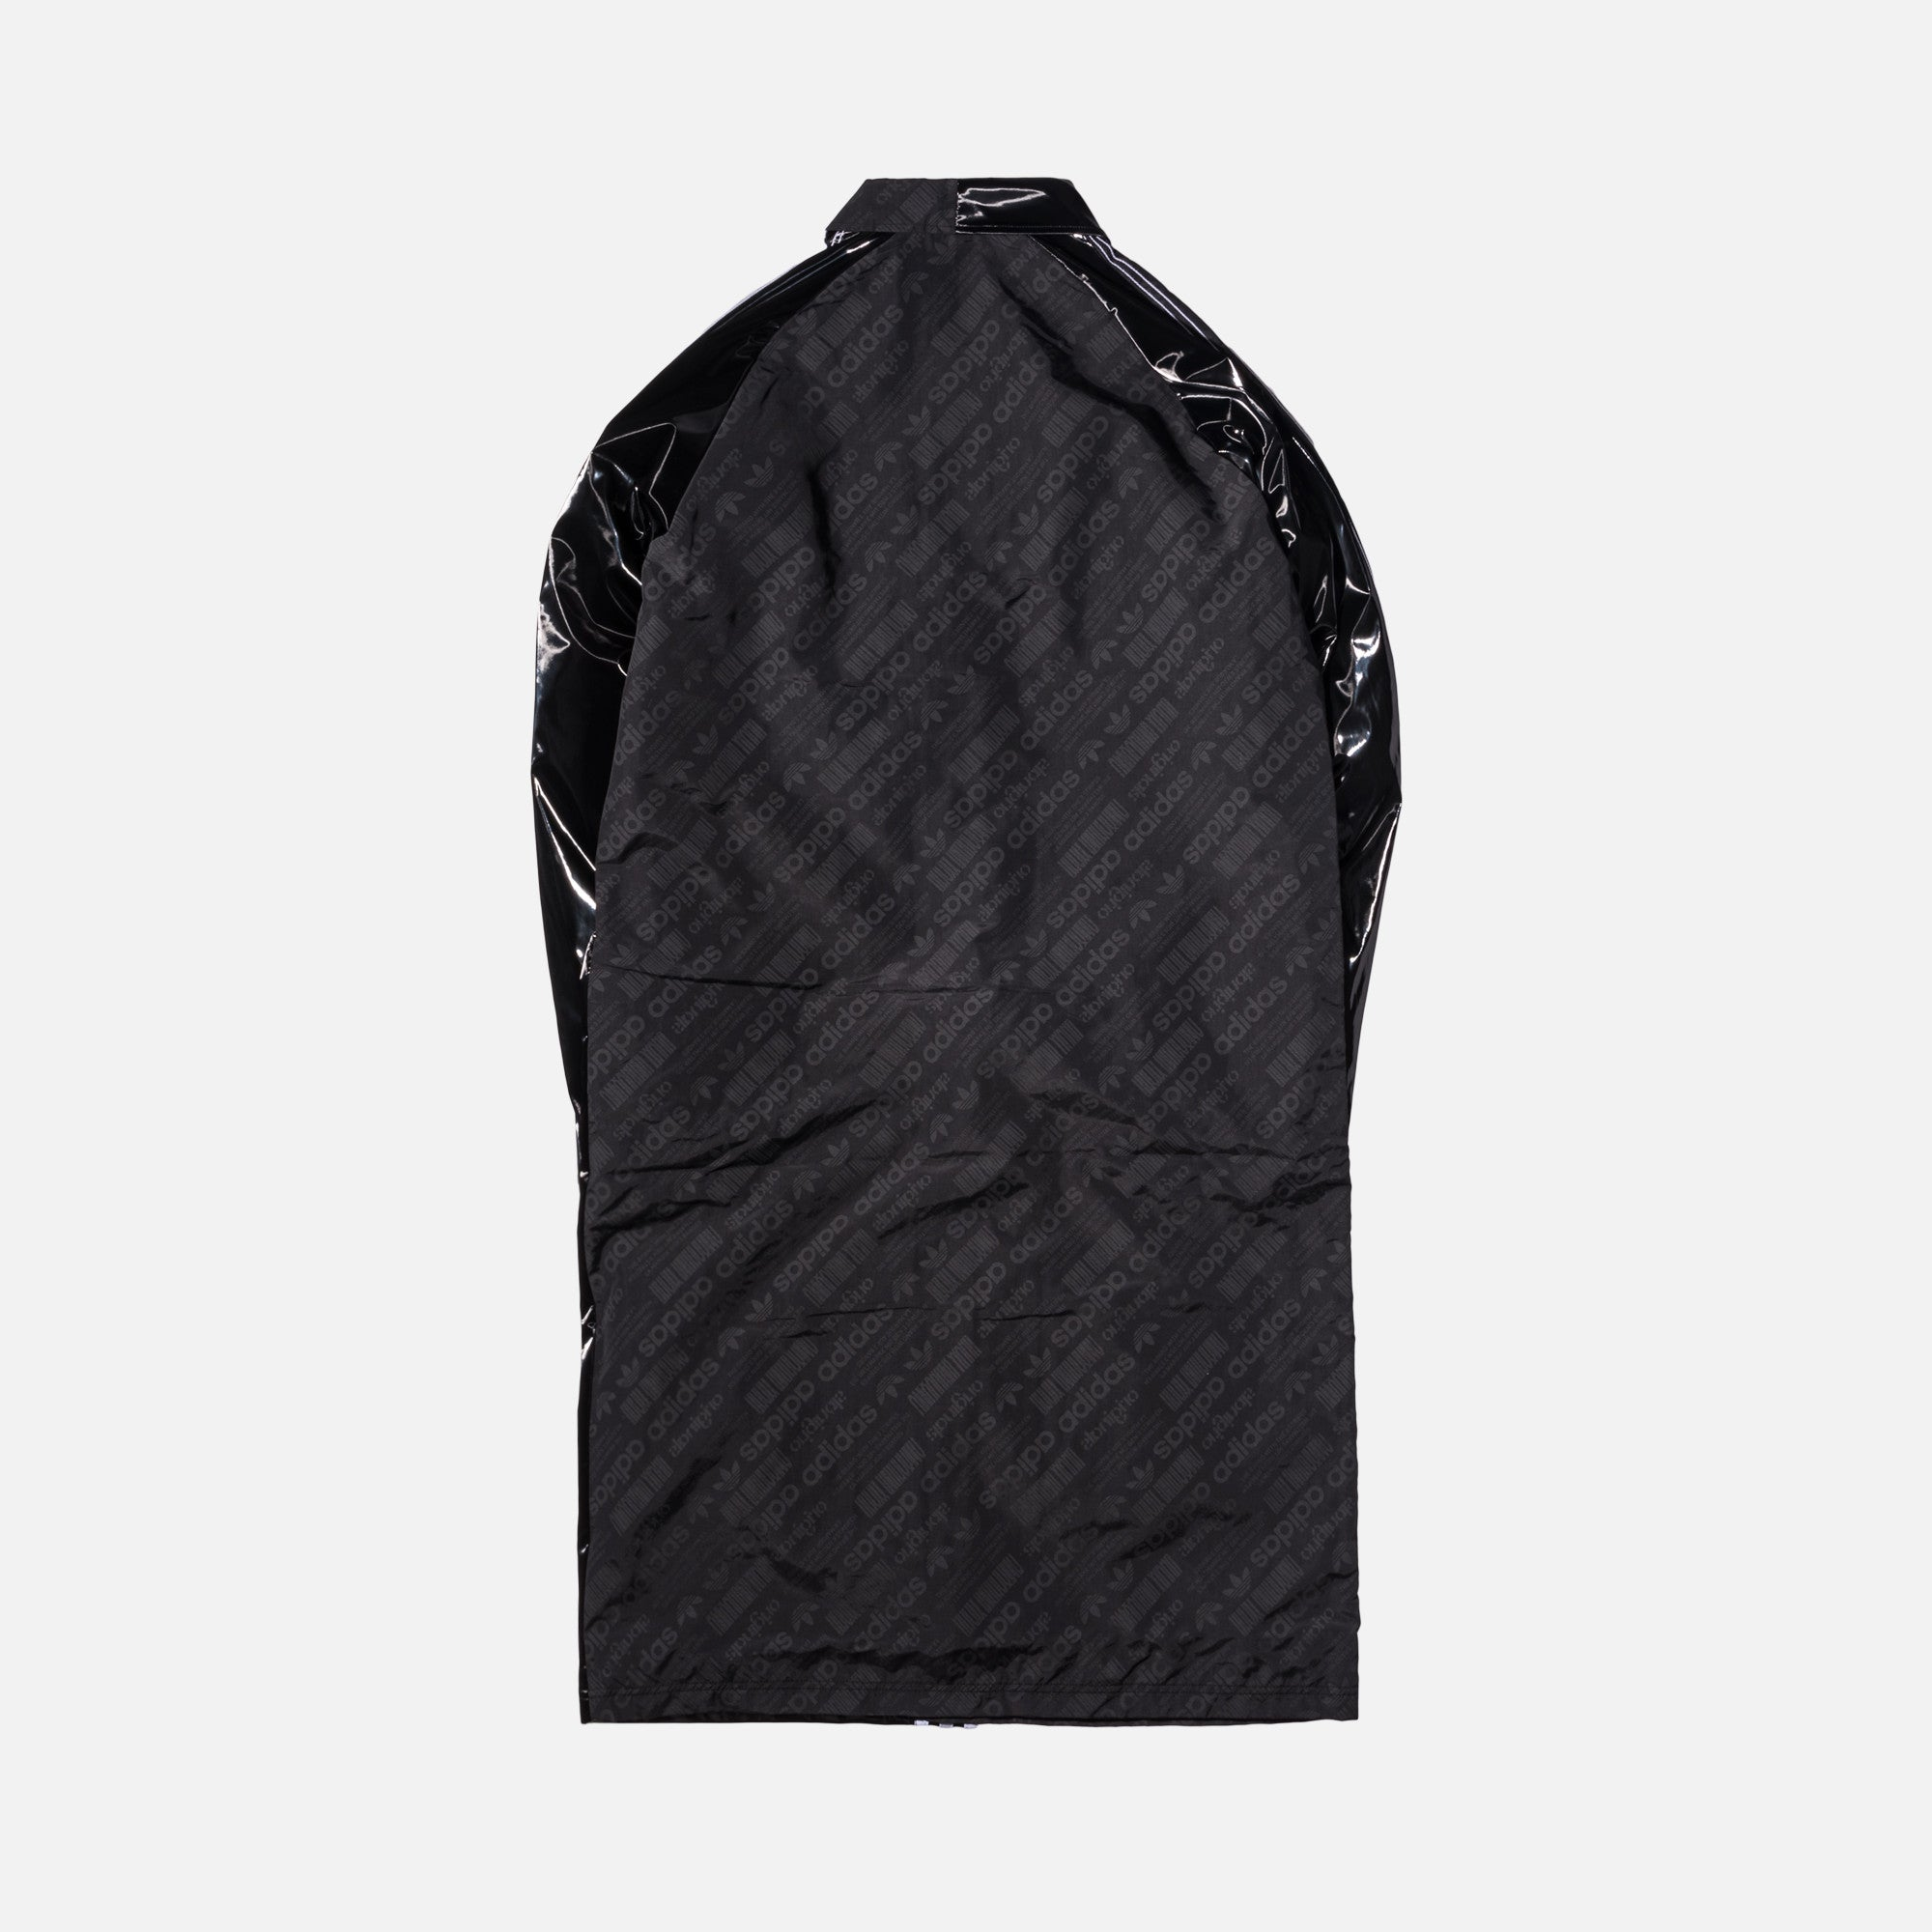 adidas Originals x Alexander Wang Patch Jacket - Black